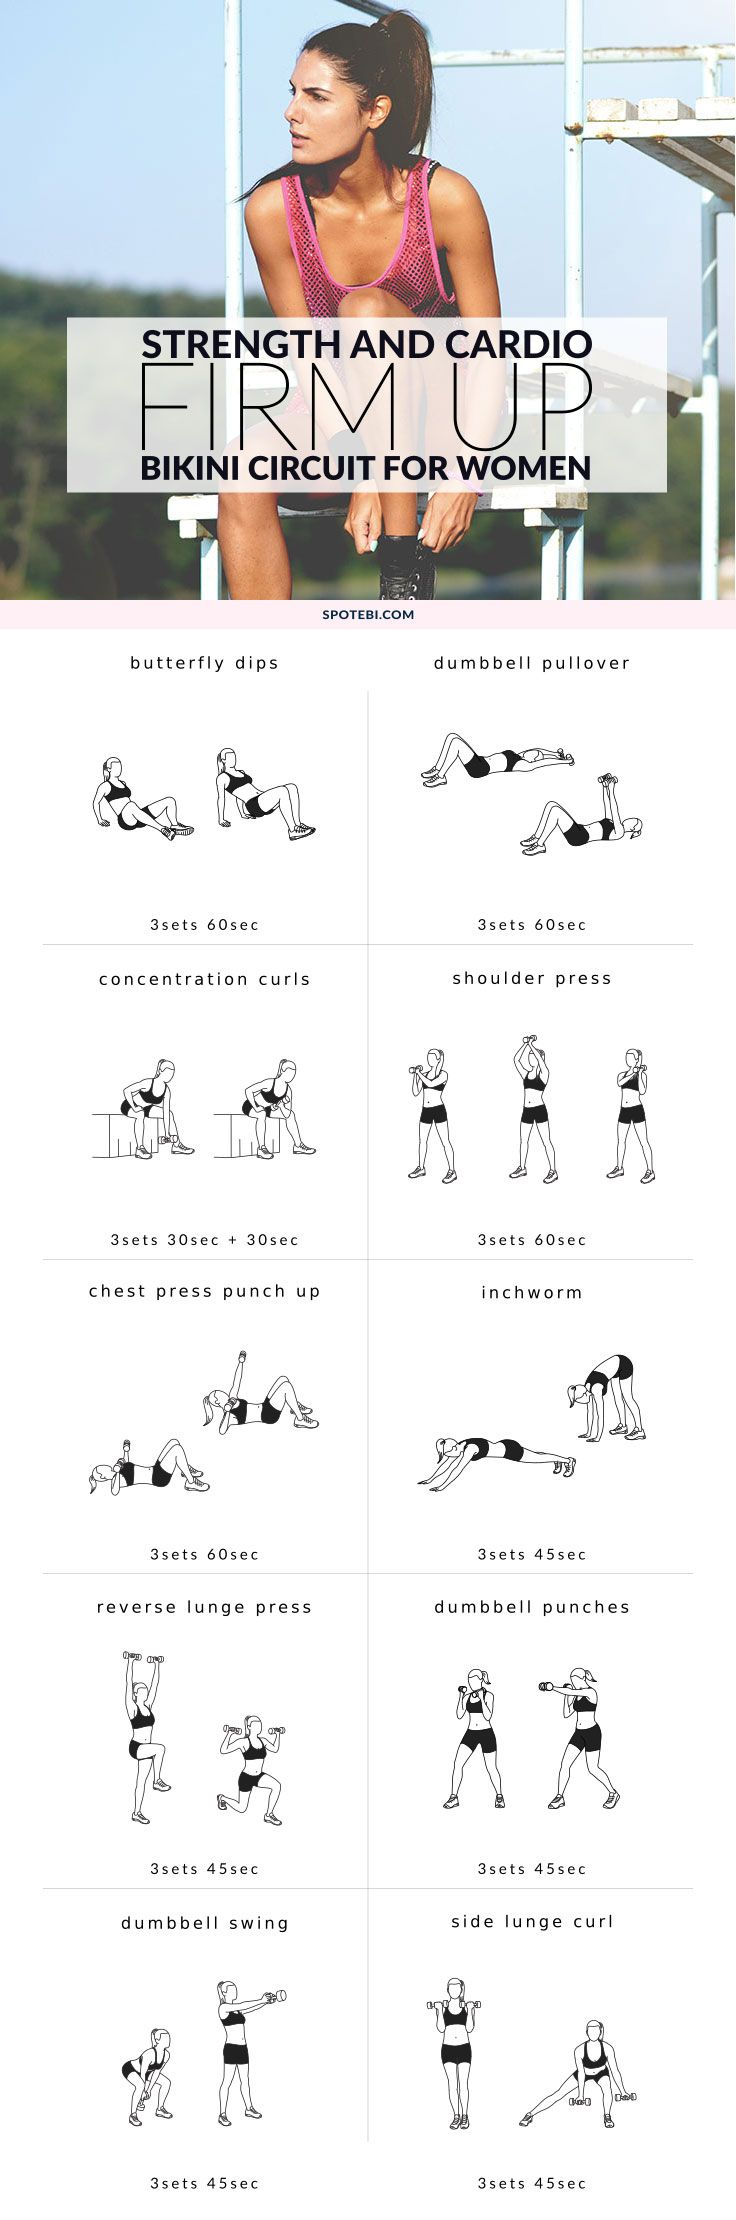 Look your best this summer and firm up your upper body with this 27-minute strength and cardio workout. This split circuit is designed to sculpt your shoulders, back and chest, get rid of flabby arms and reveal a sexy new you!